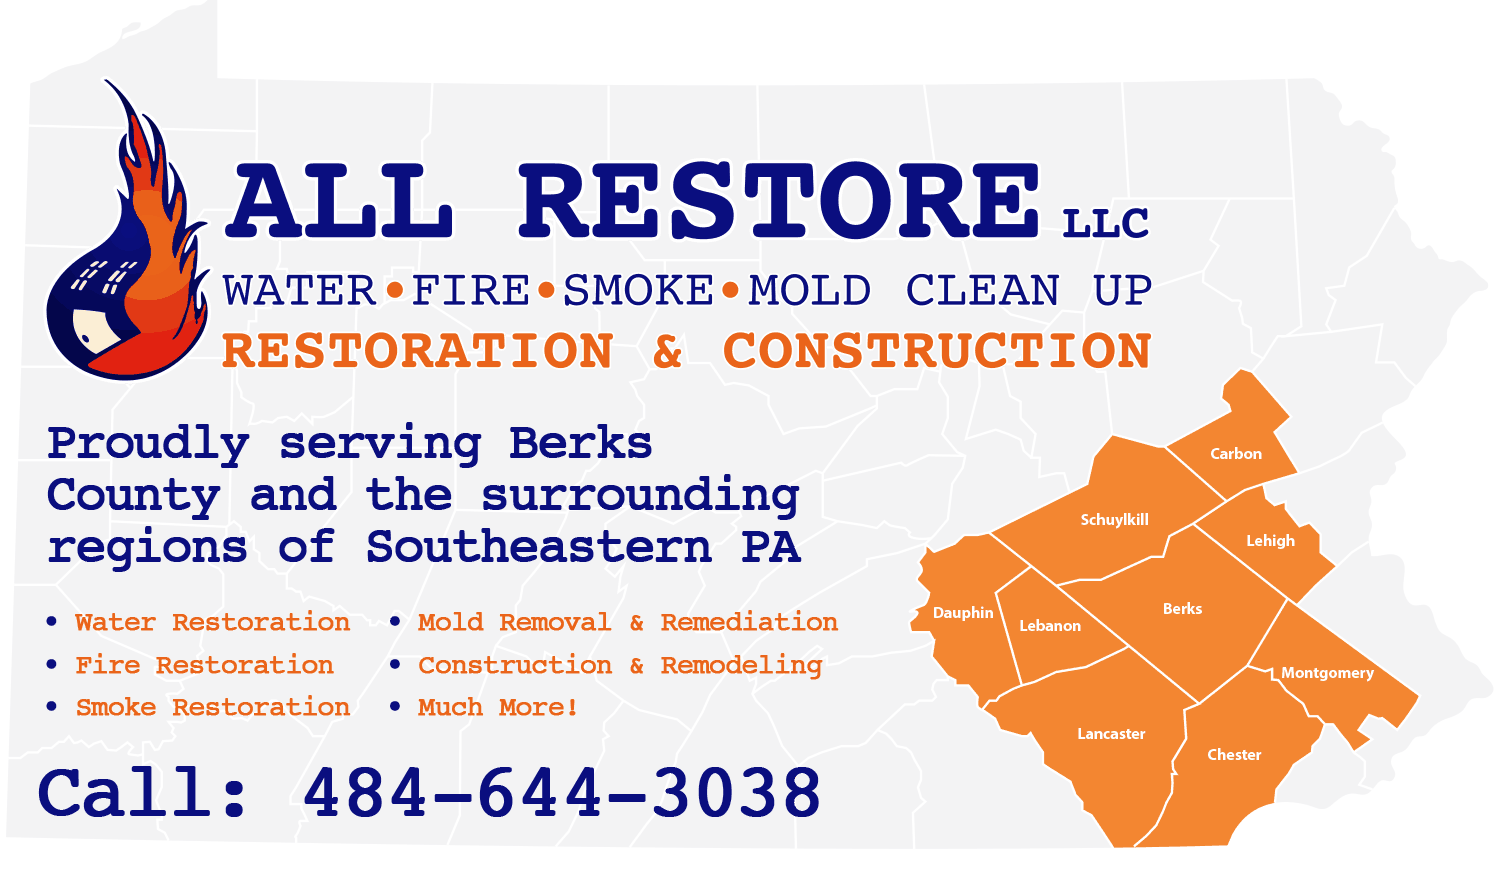 Southeast PA Fire & Water Restoration Company